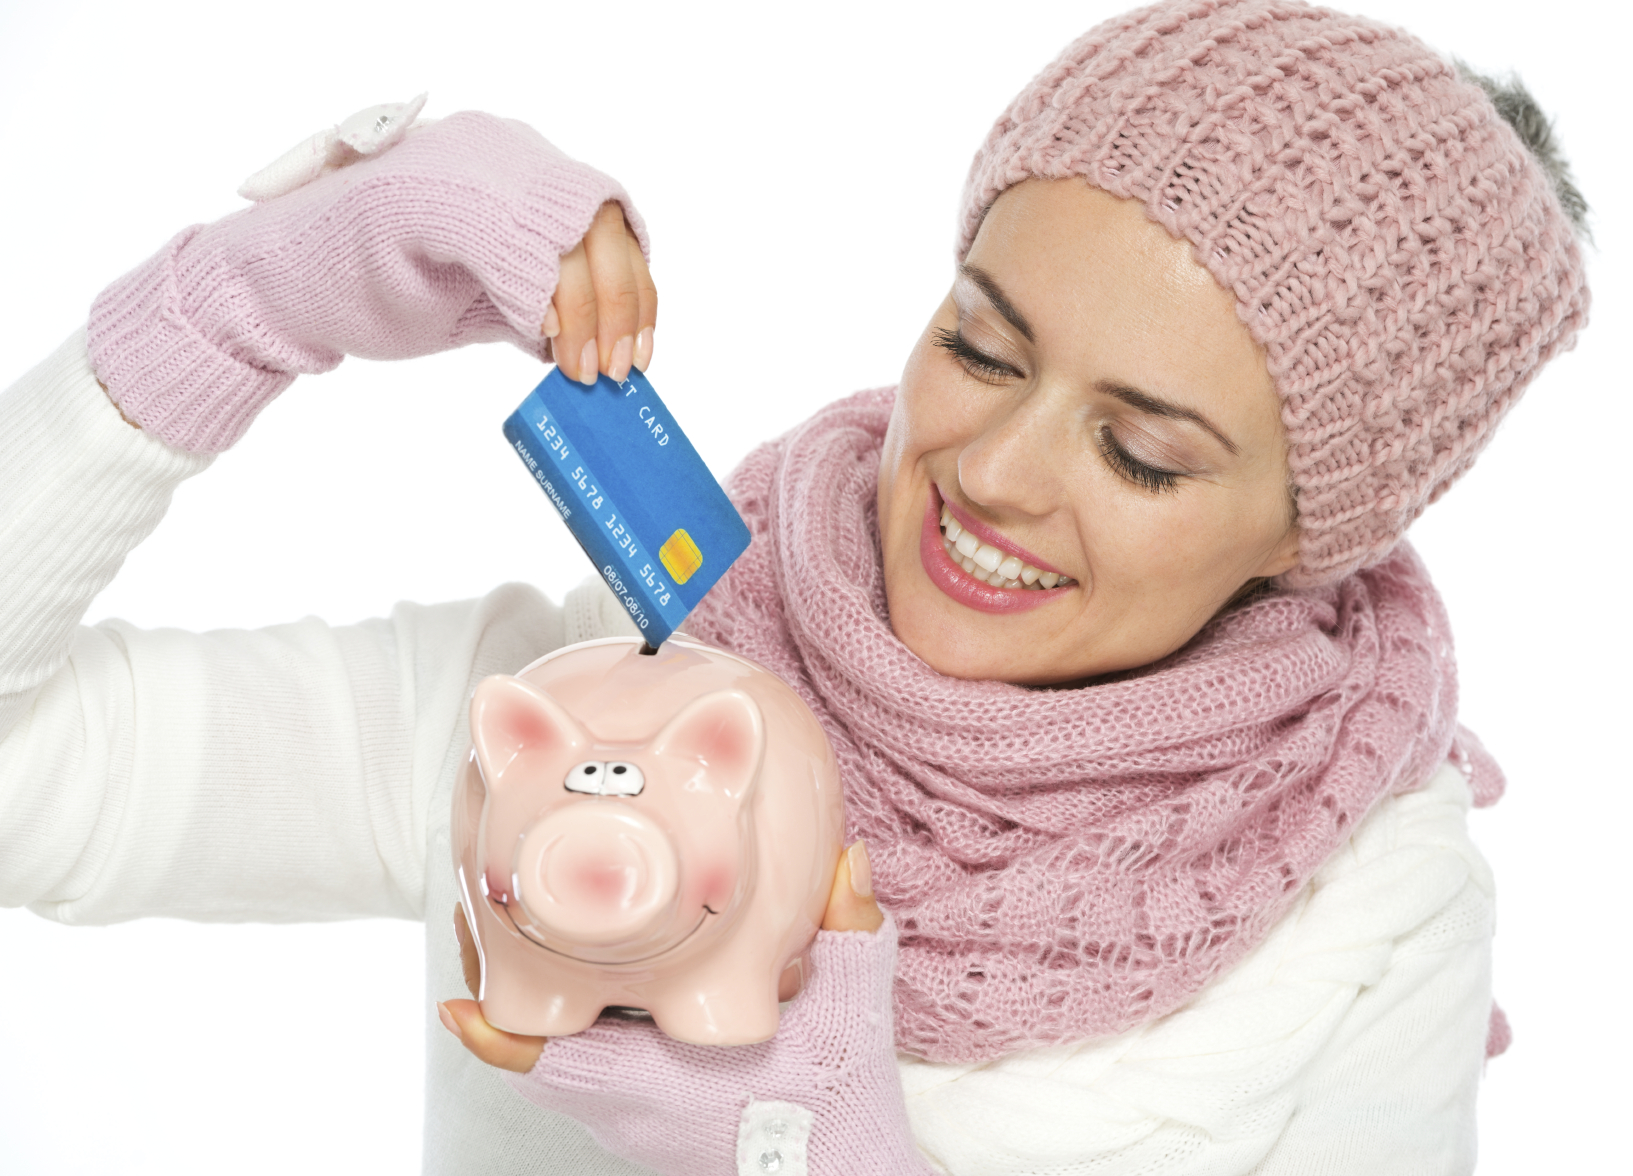 woman mother putting credit card into piggy bank saving points for traveling and airline miles